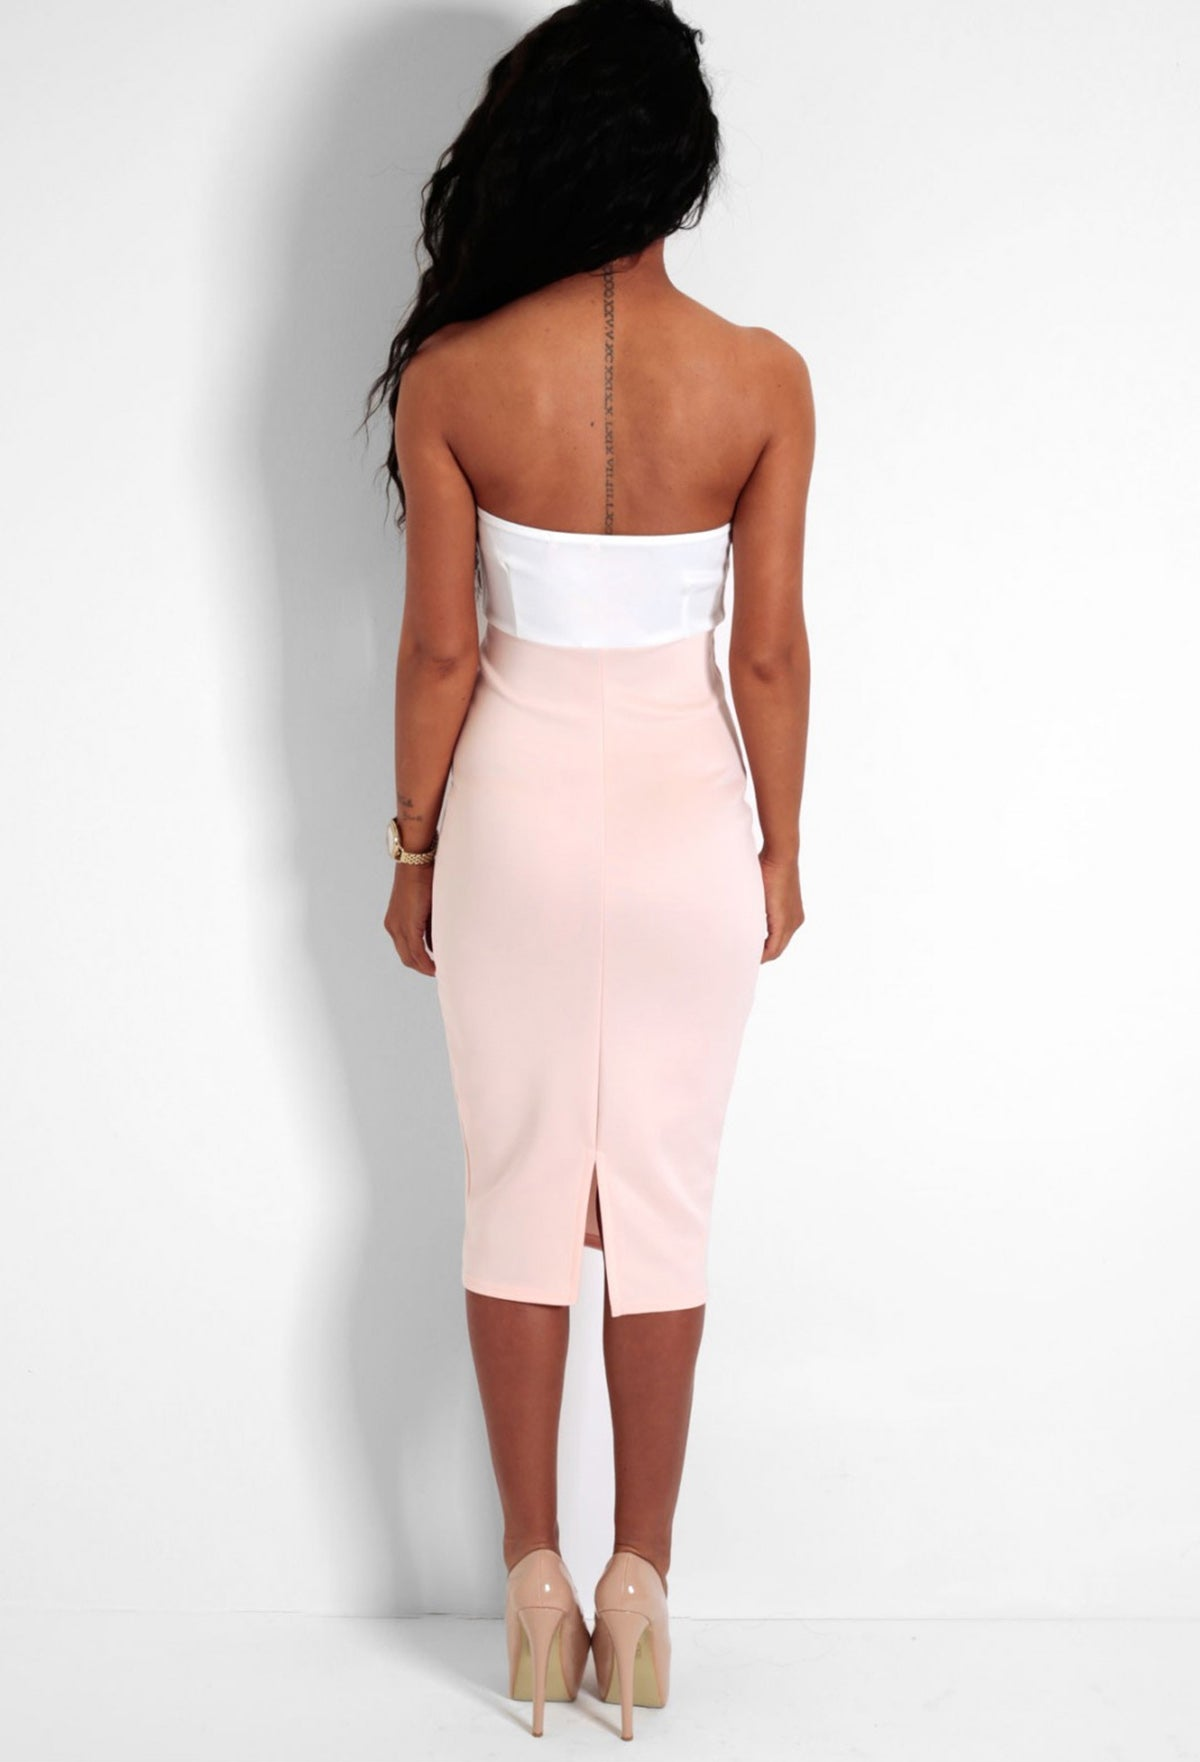 Candy Dream Cream   Nude Contrast Plunge Strapless Dress – Pink ... 037728bc9